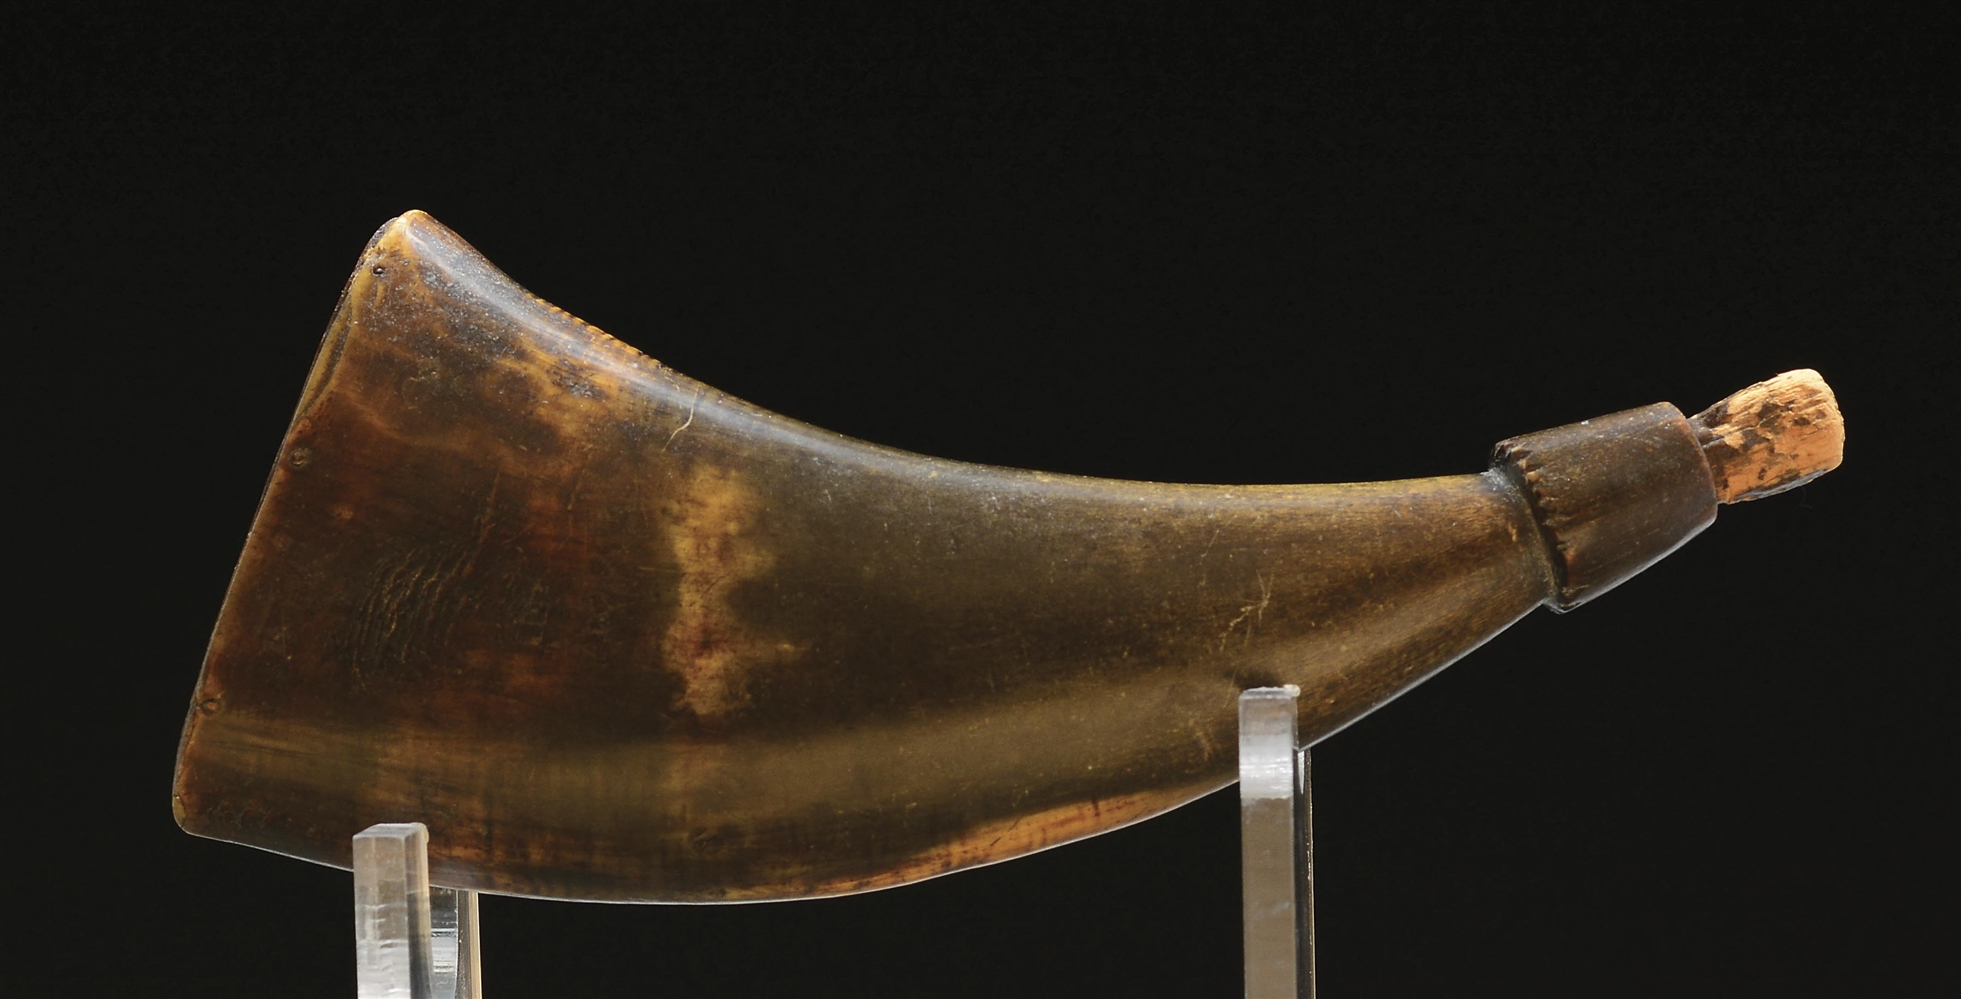 SMALL POWDER HORN WITH BUTT INSCRIBED WITH INITIALS AND DATE, 1767.